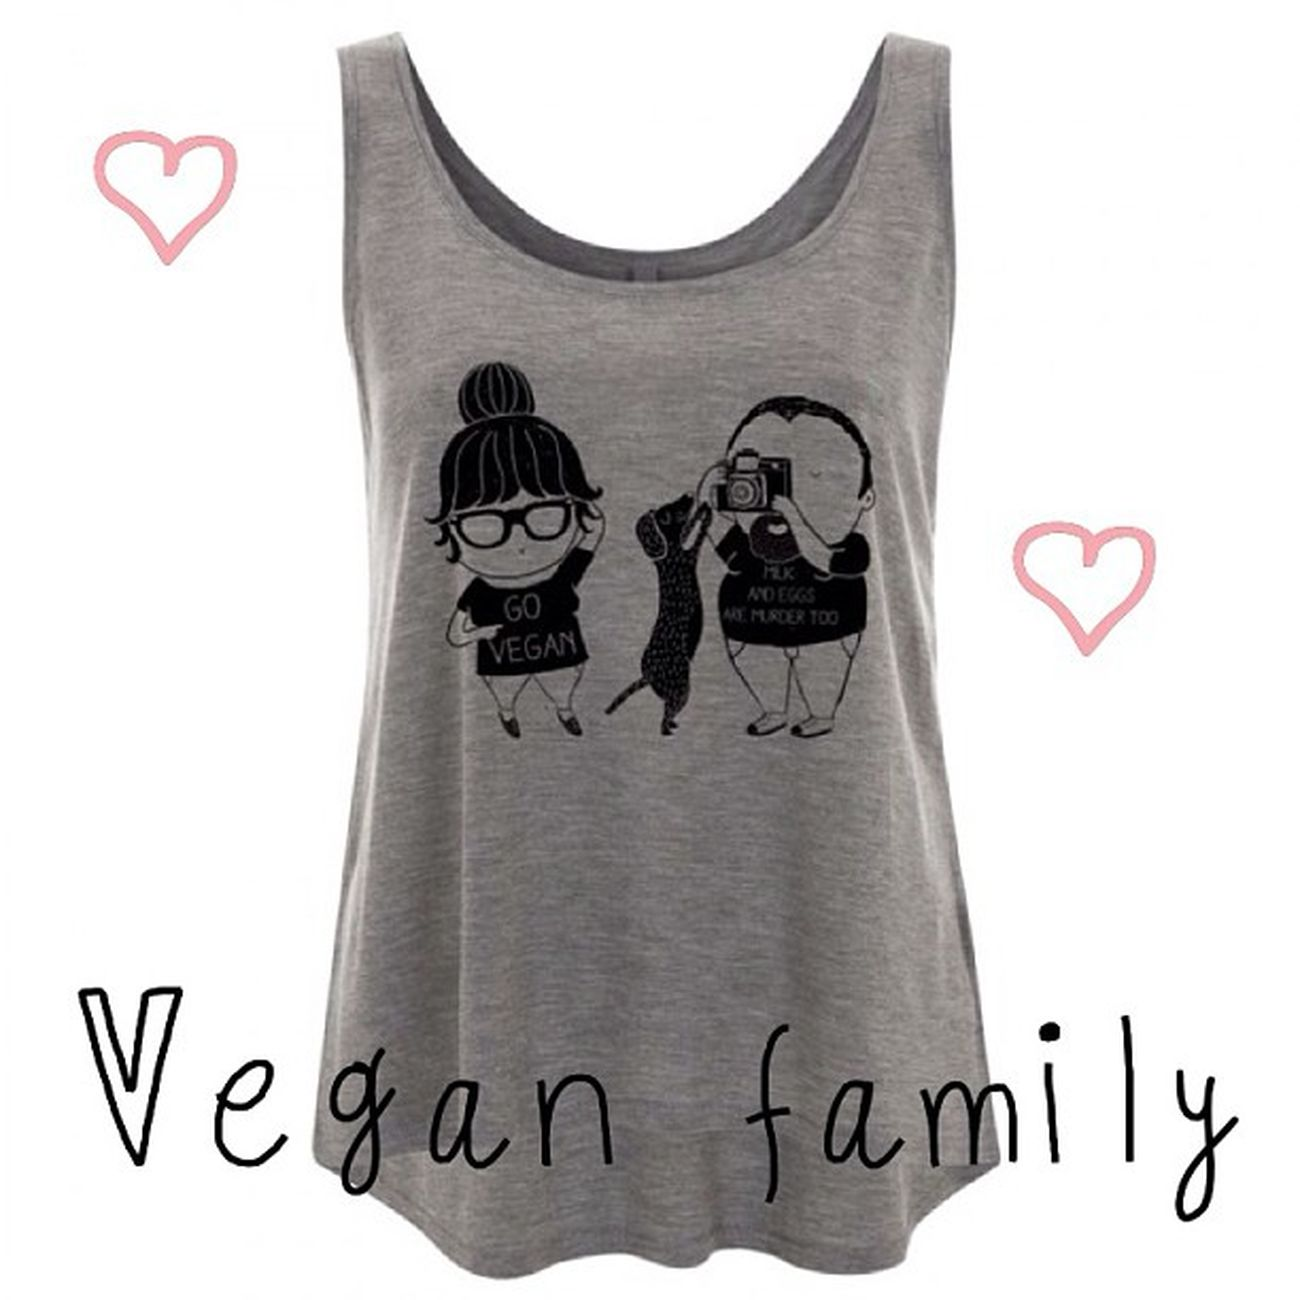 Vegan family tencel tank top, available now! www.chiaralascura.it #vegan #veganfashion #veganshopping #veganshirt #veganfashion #modaetica #modabio #tencel #fairwear #vegansofig #ecofashion #chiaralascura #ethicalfashion Vegan Vegansofig Chiaralascura Veganshirt Veganshopping Fairwear Veganfashion Ecofashion Modaetica Ethicalfashion Tencel Modabio